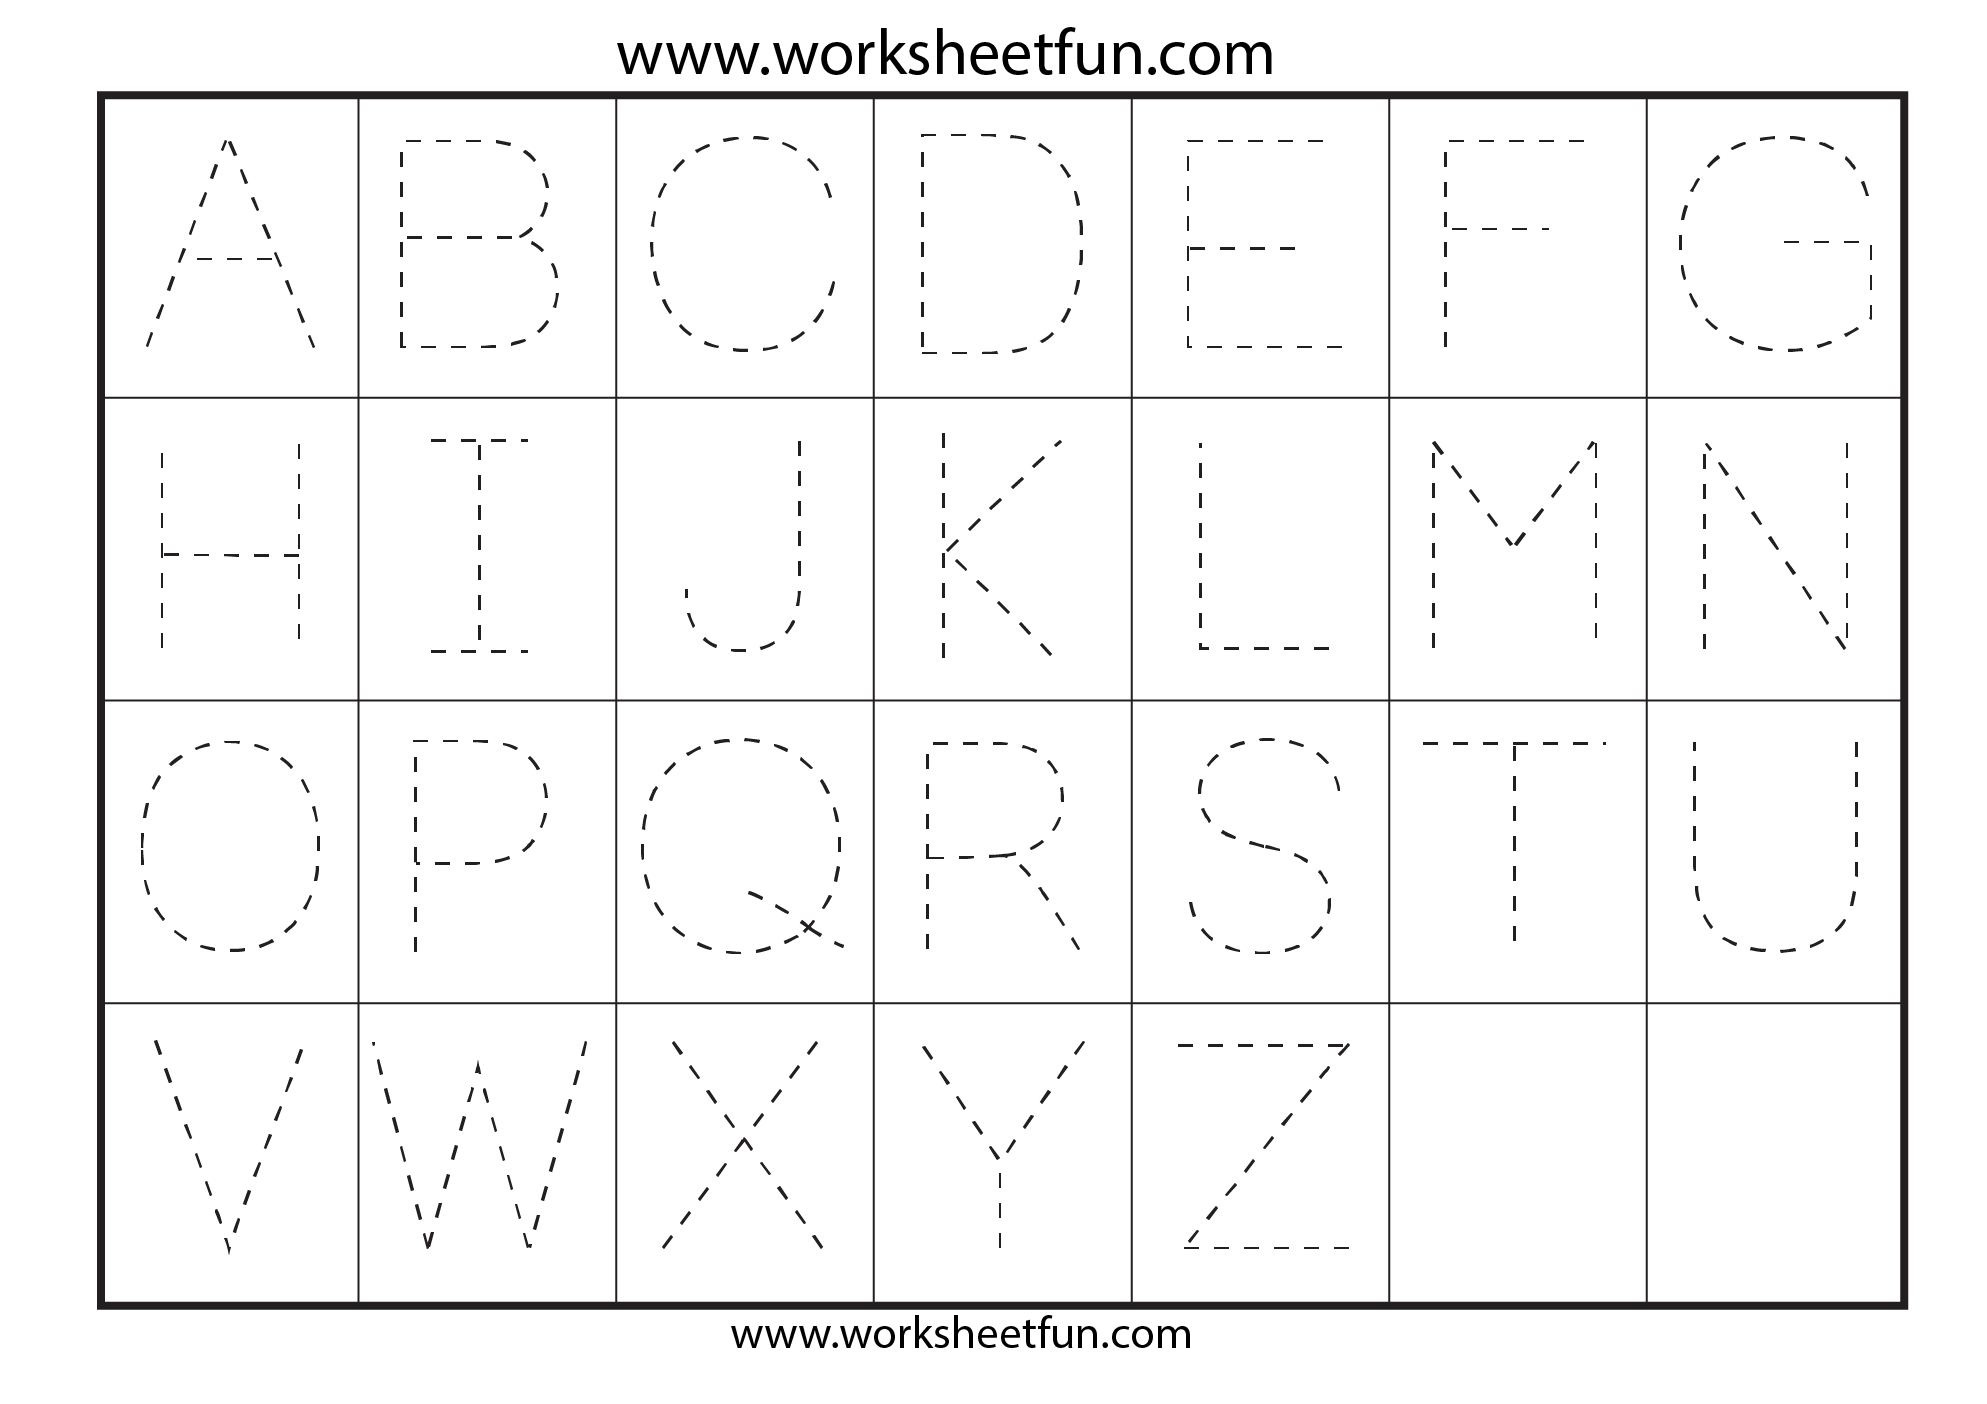 Free Worksheet Free Name Tracing Worksheets paydayloansusaprh – Name Tracer Worksheets